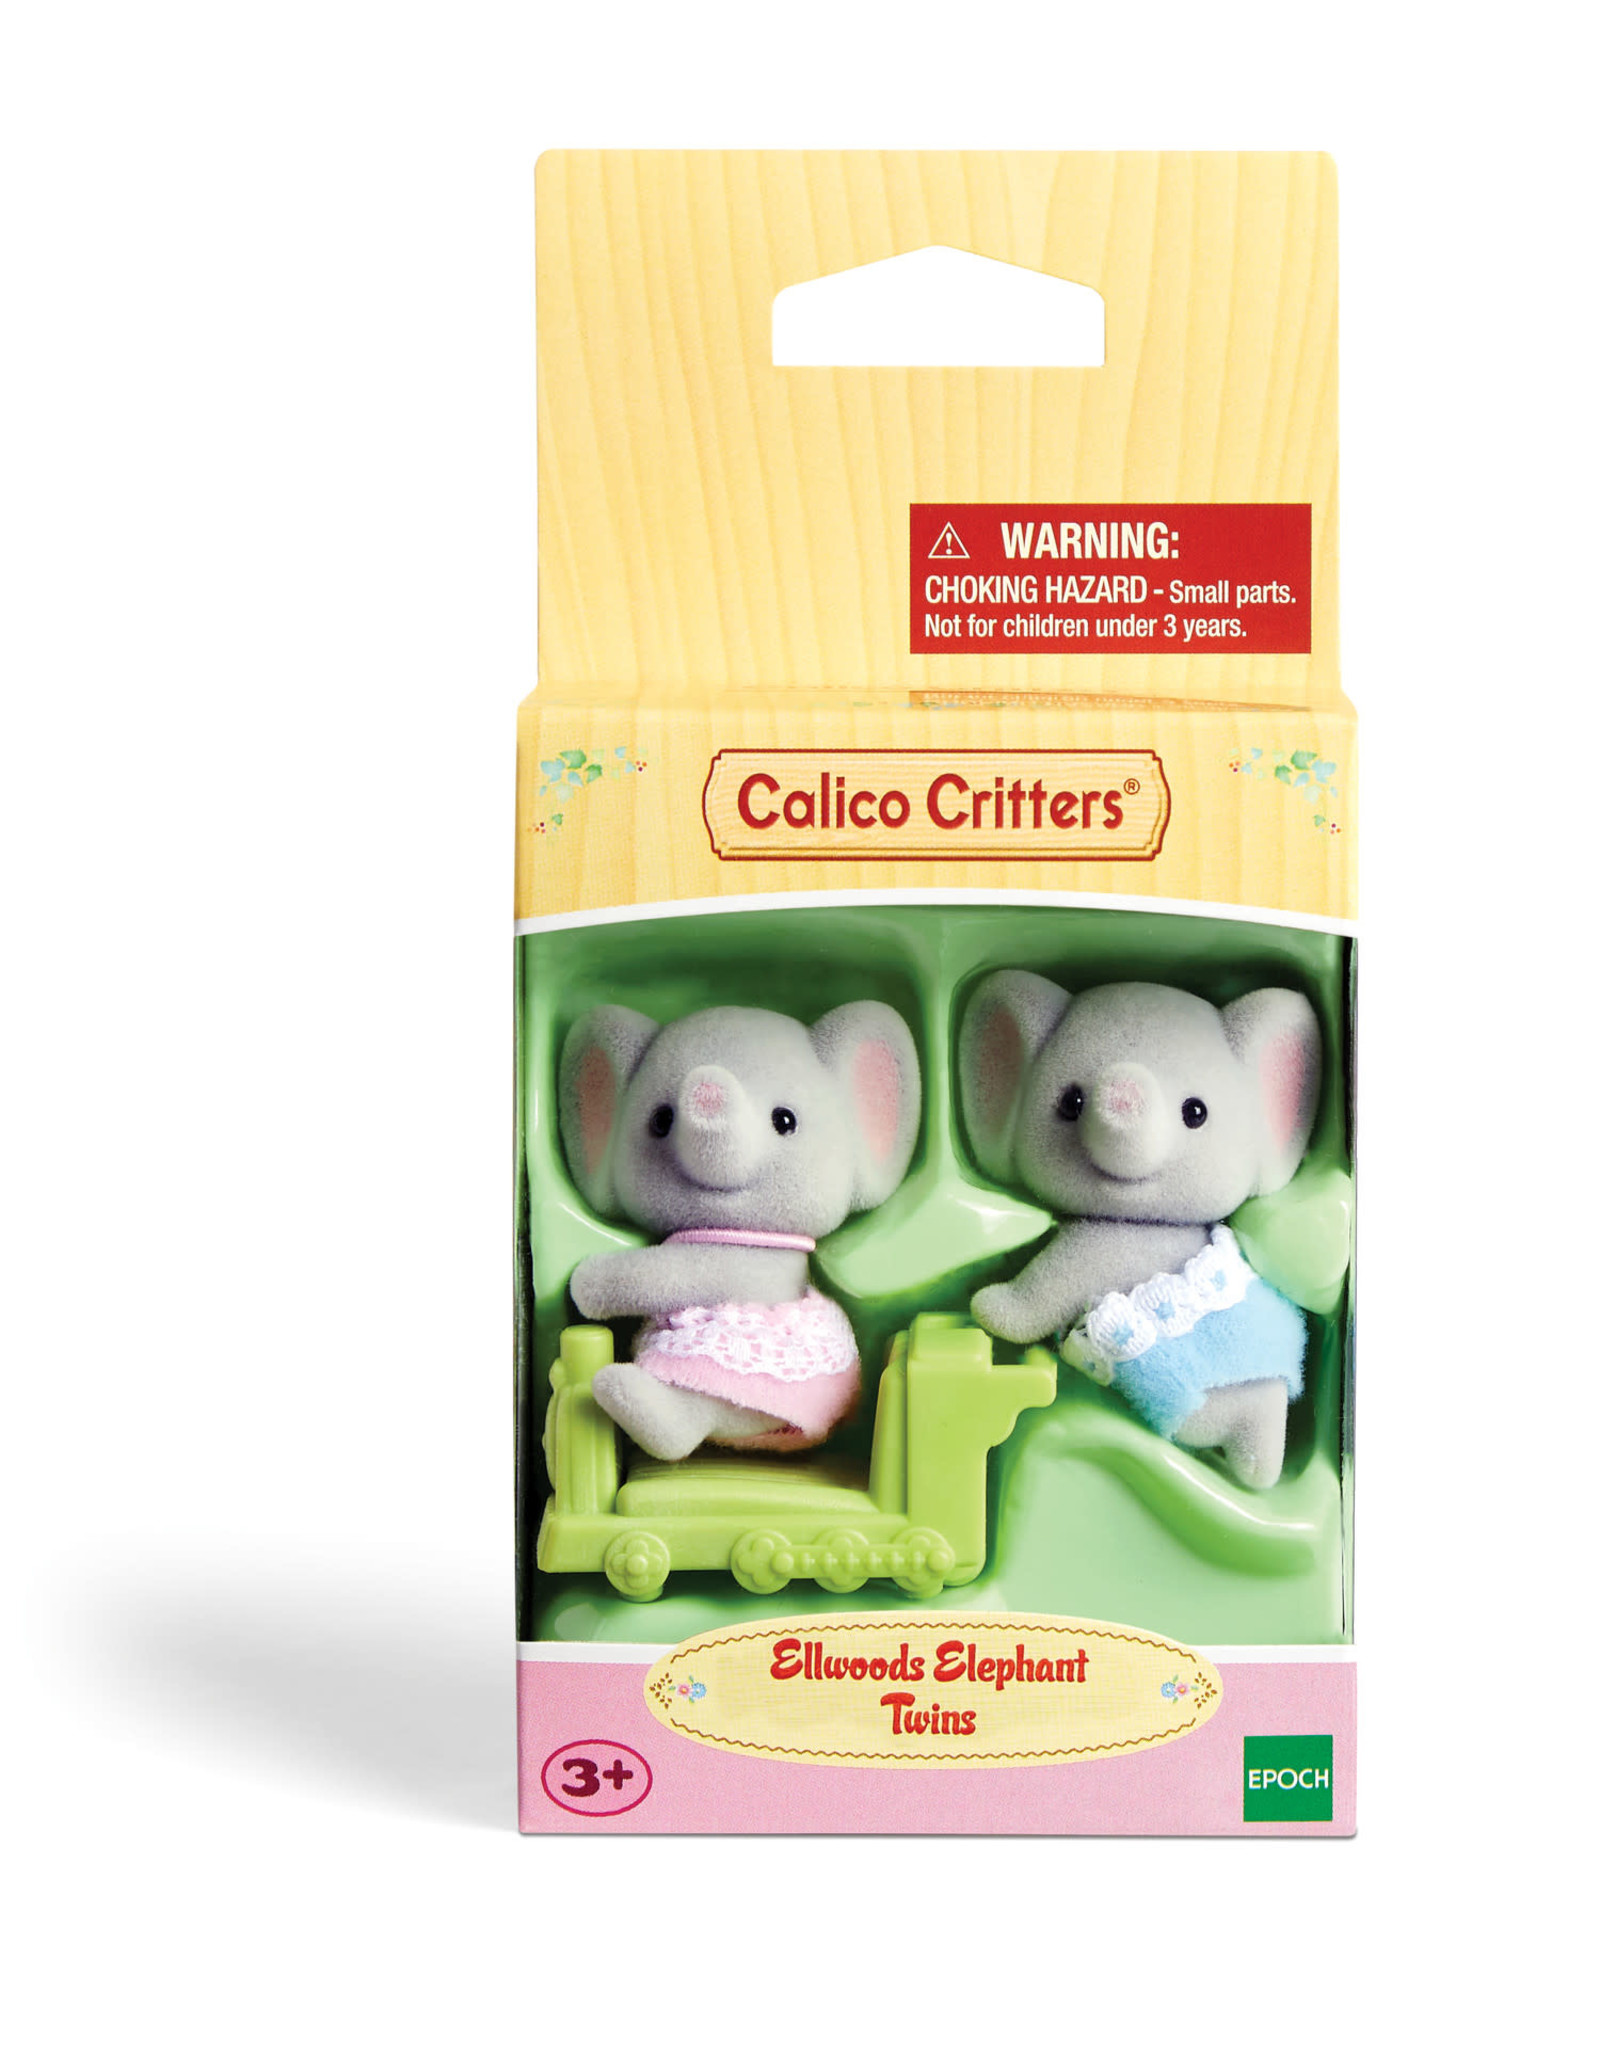 Calico Critters Calico Critter Ellwoods Elephant Twins